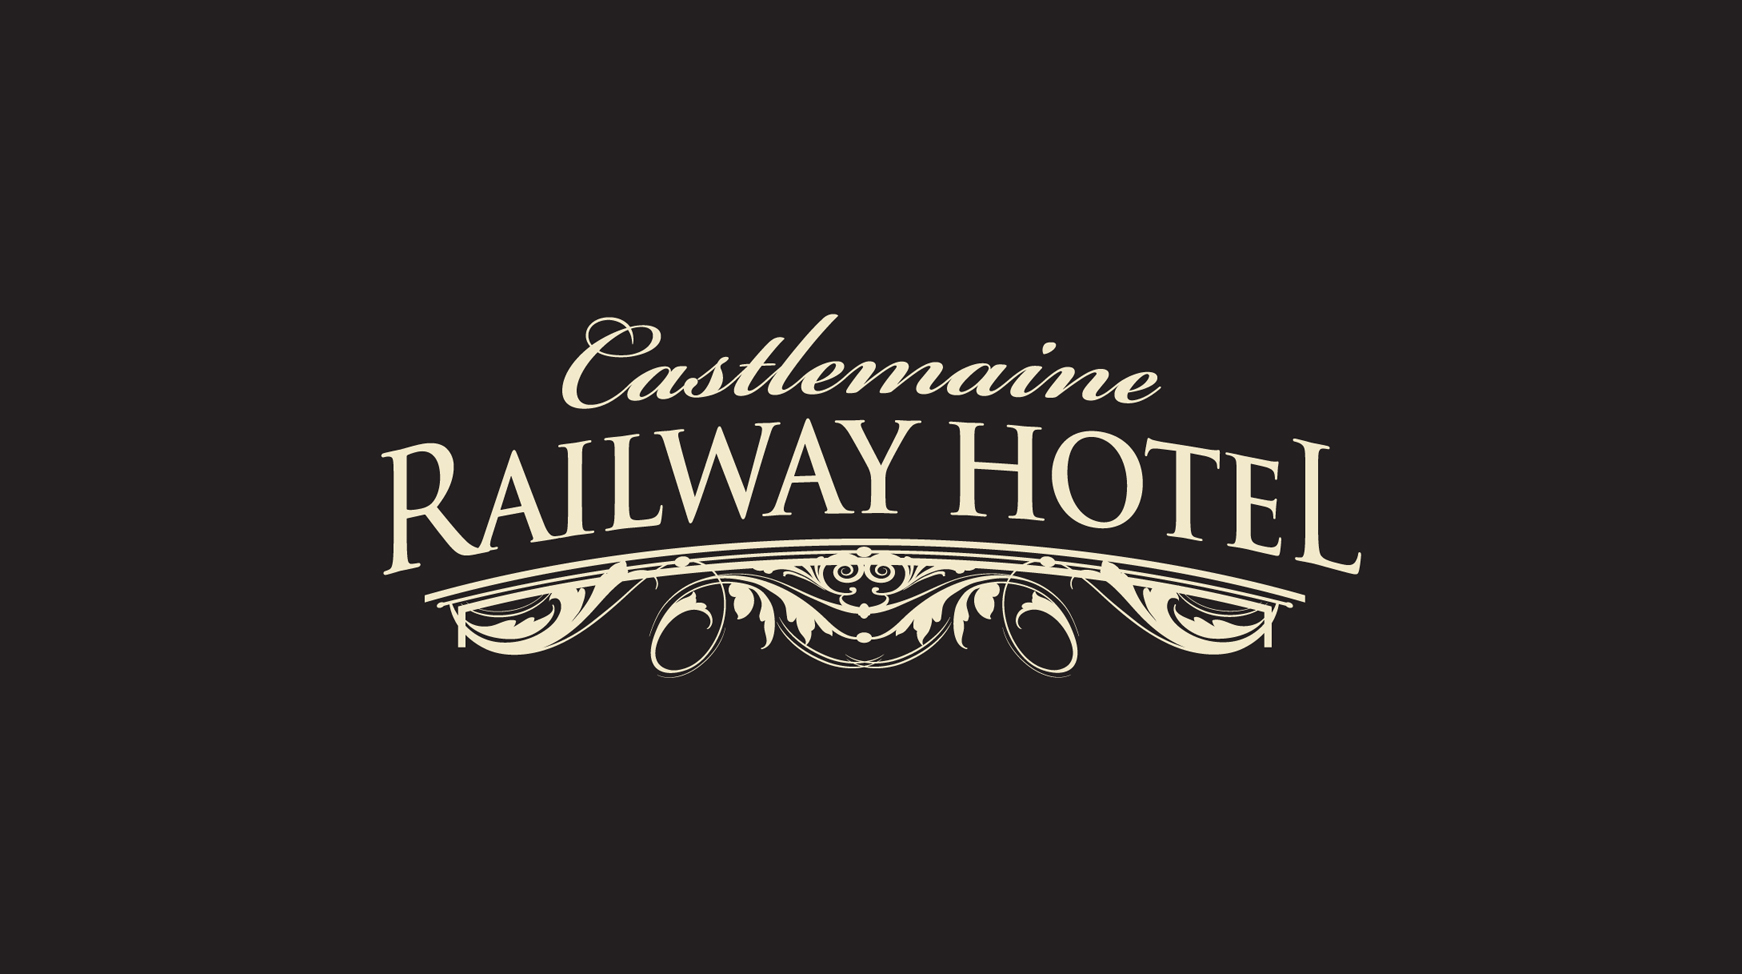 Railway Hotel Castlemaine - Accommodation Georgetown